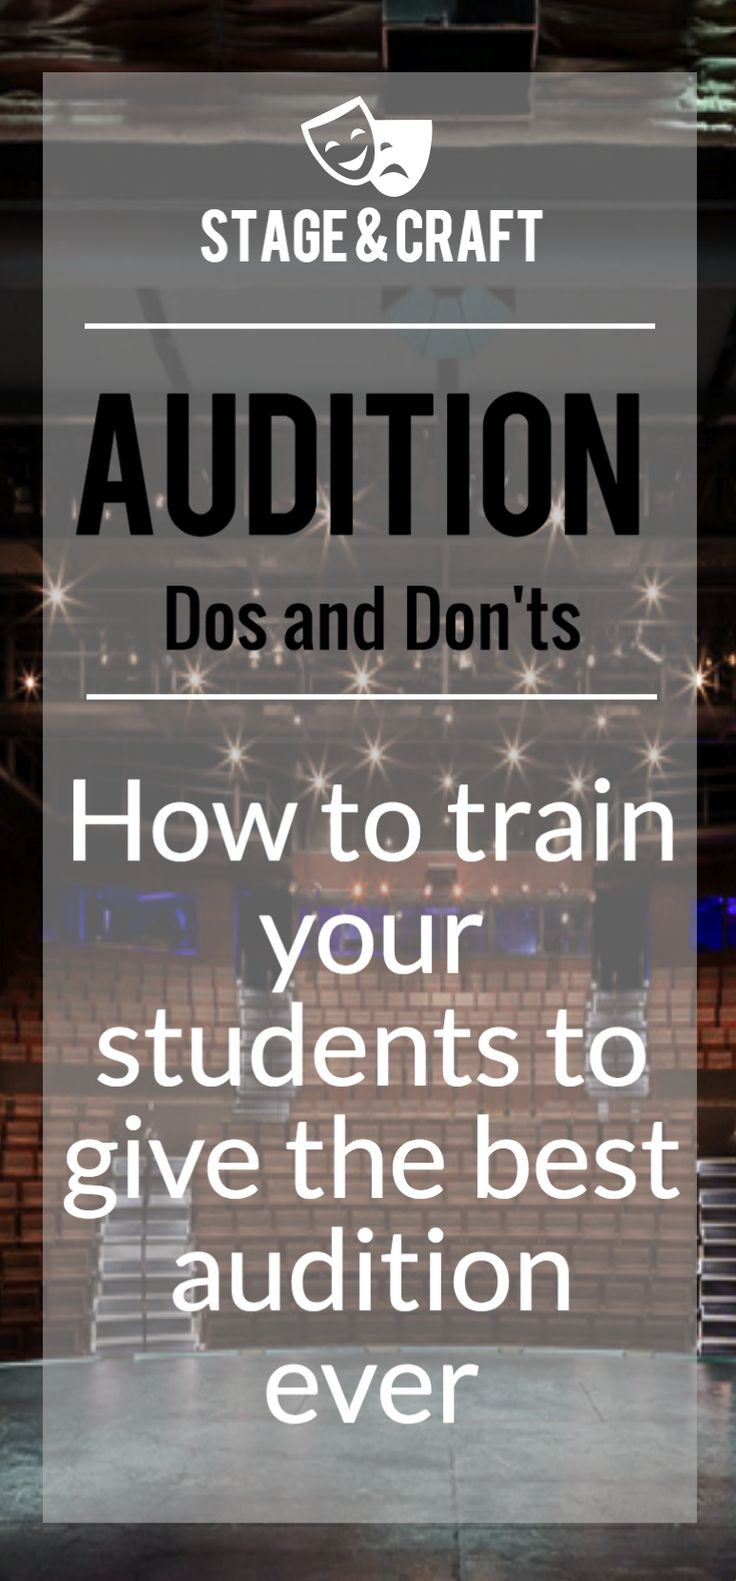 These are the best tips to give to your actors before they prepare for an audition. Stage & Craft